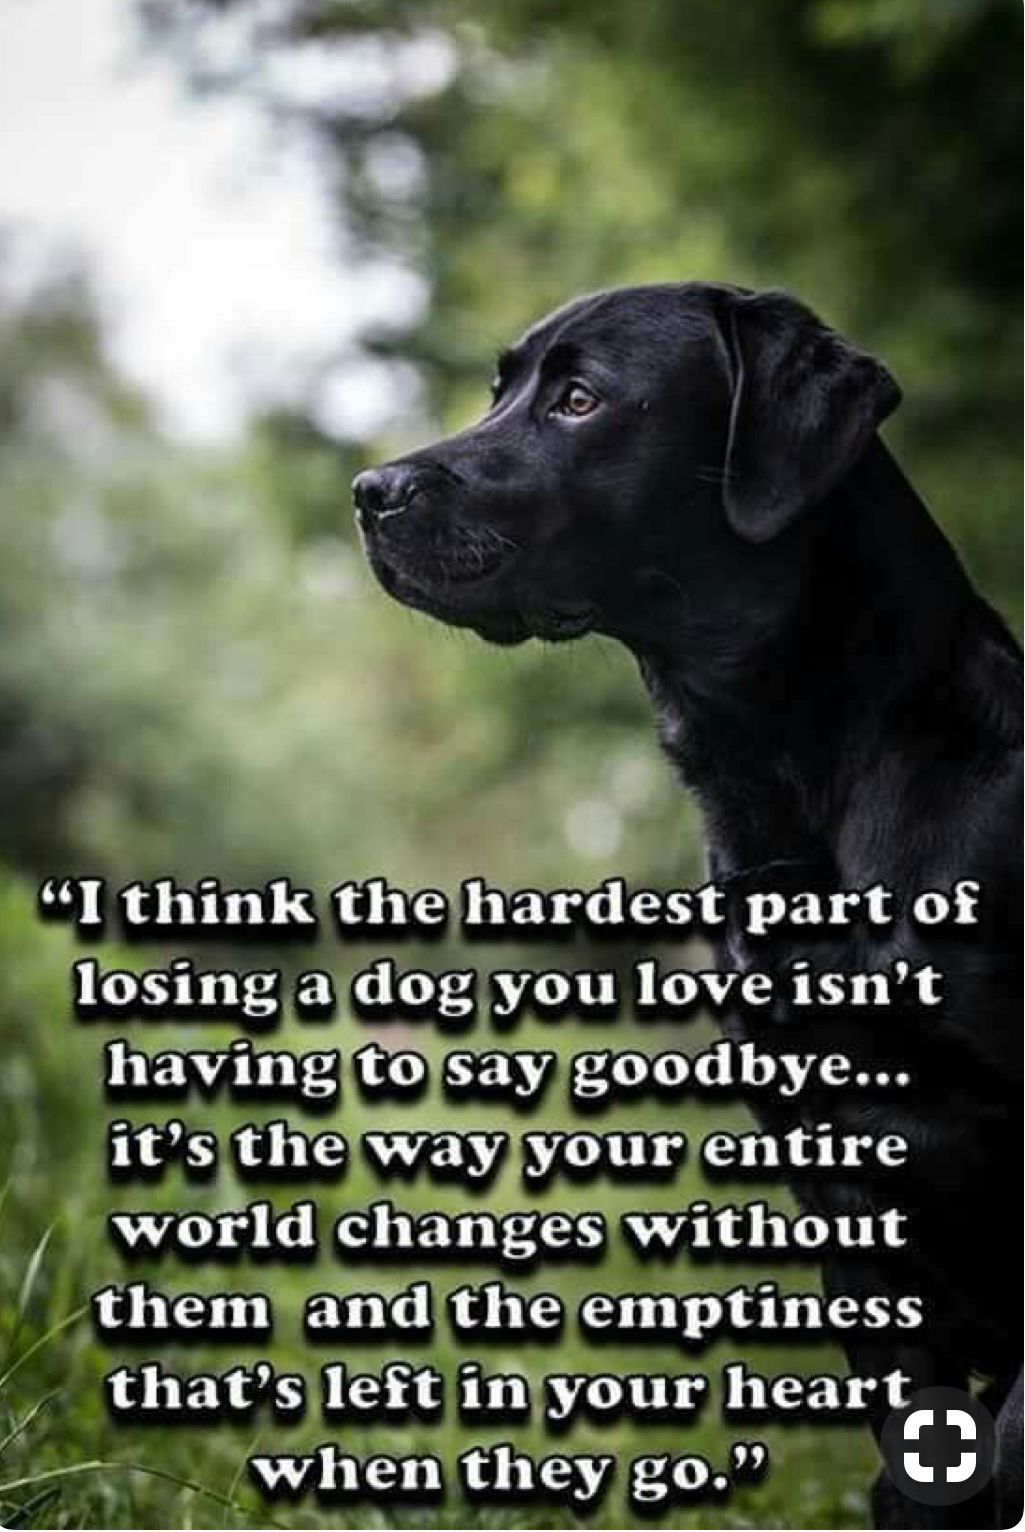 Omgosh Soooooooo True All Dogs Go To Heaven Dogs Pets Puppies